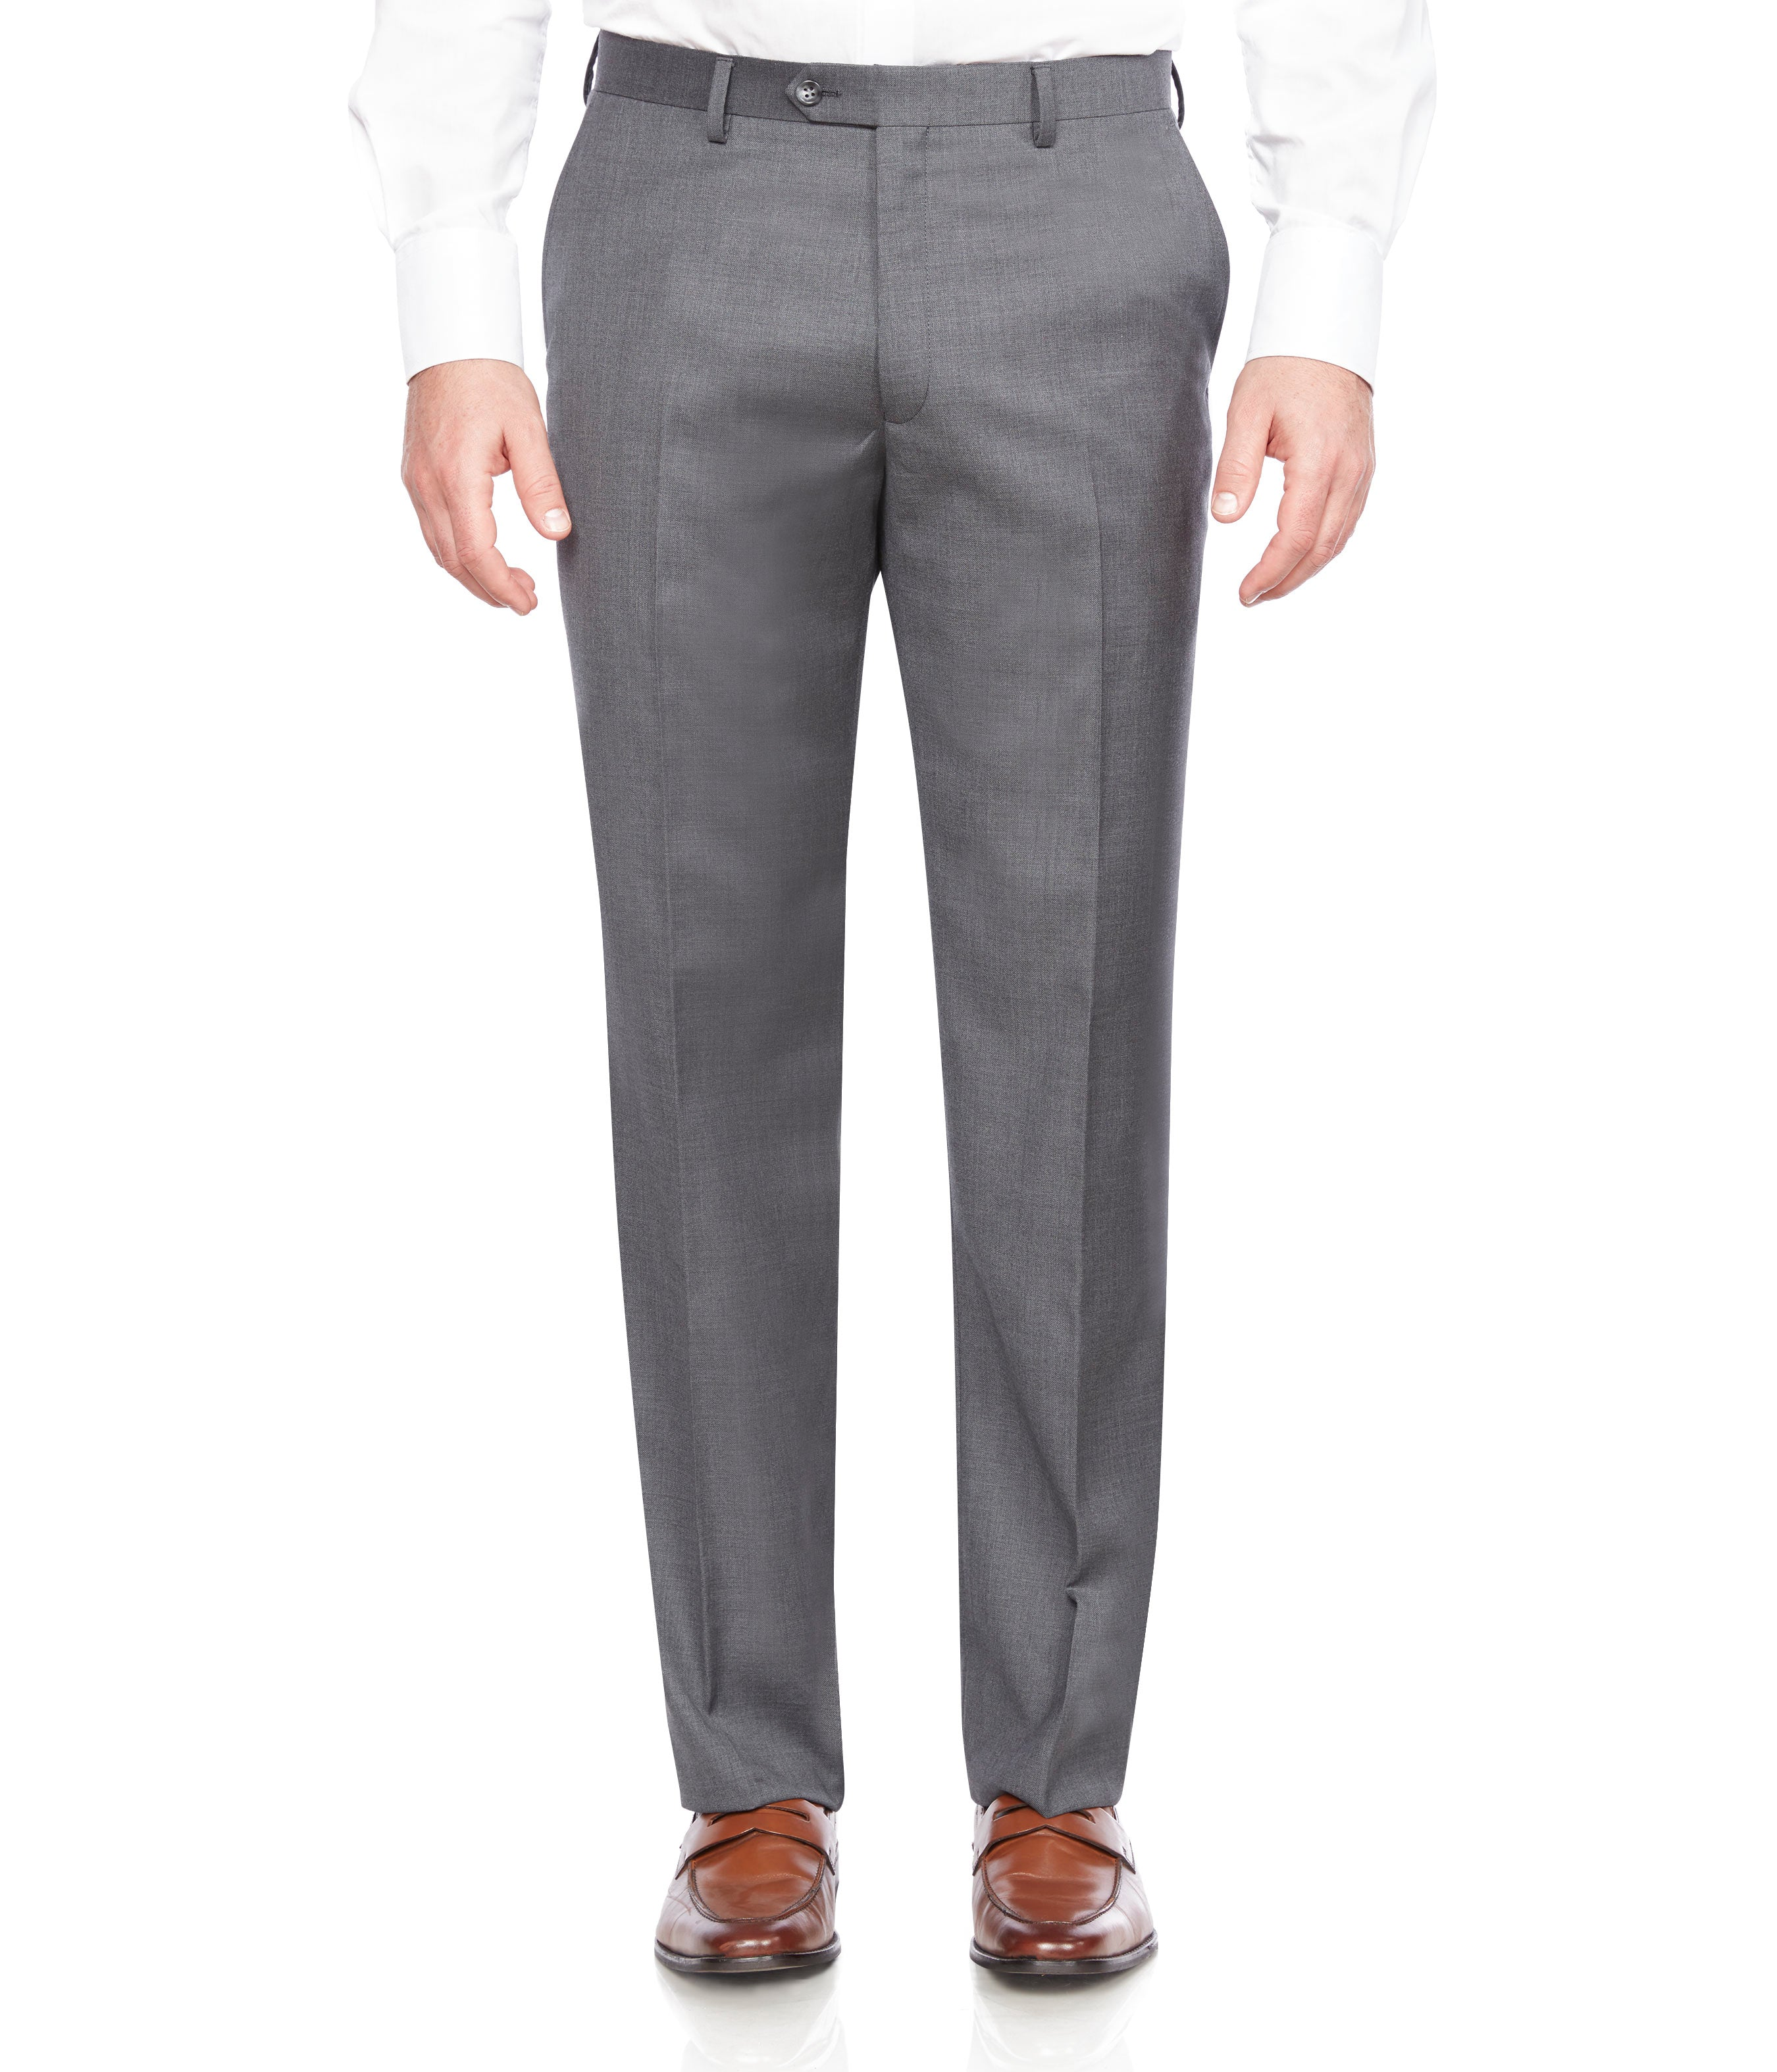 DRESS PANT GREY BY ZANETTI